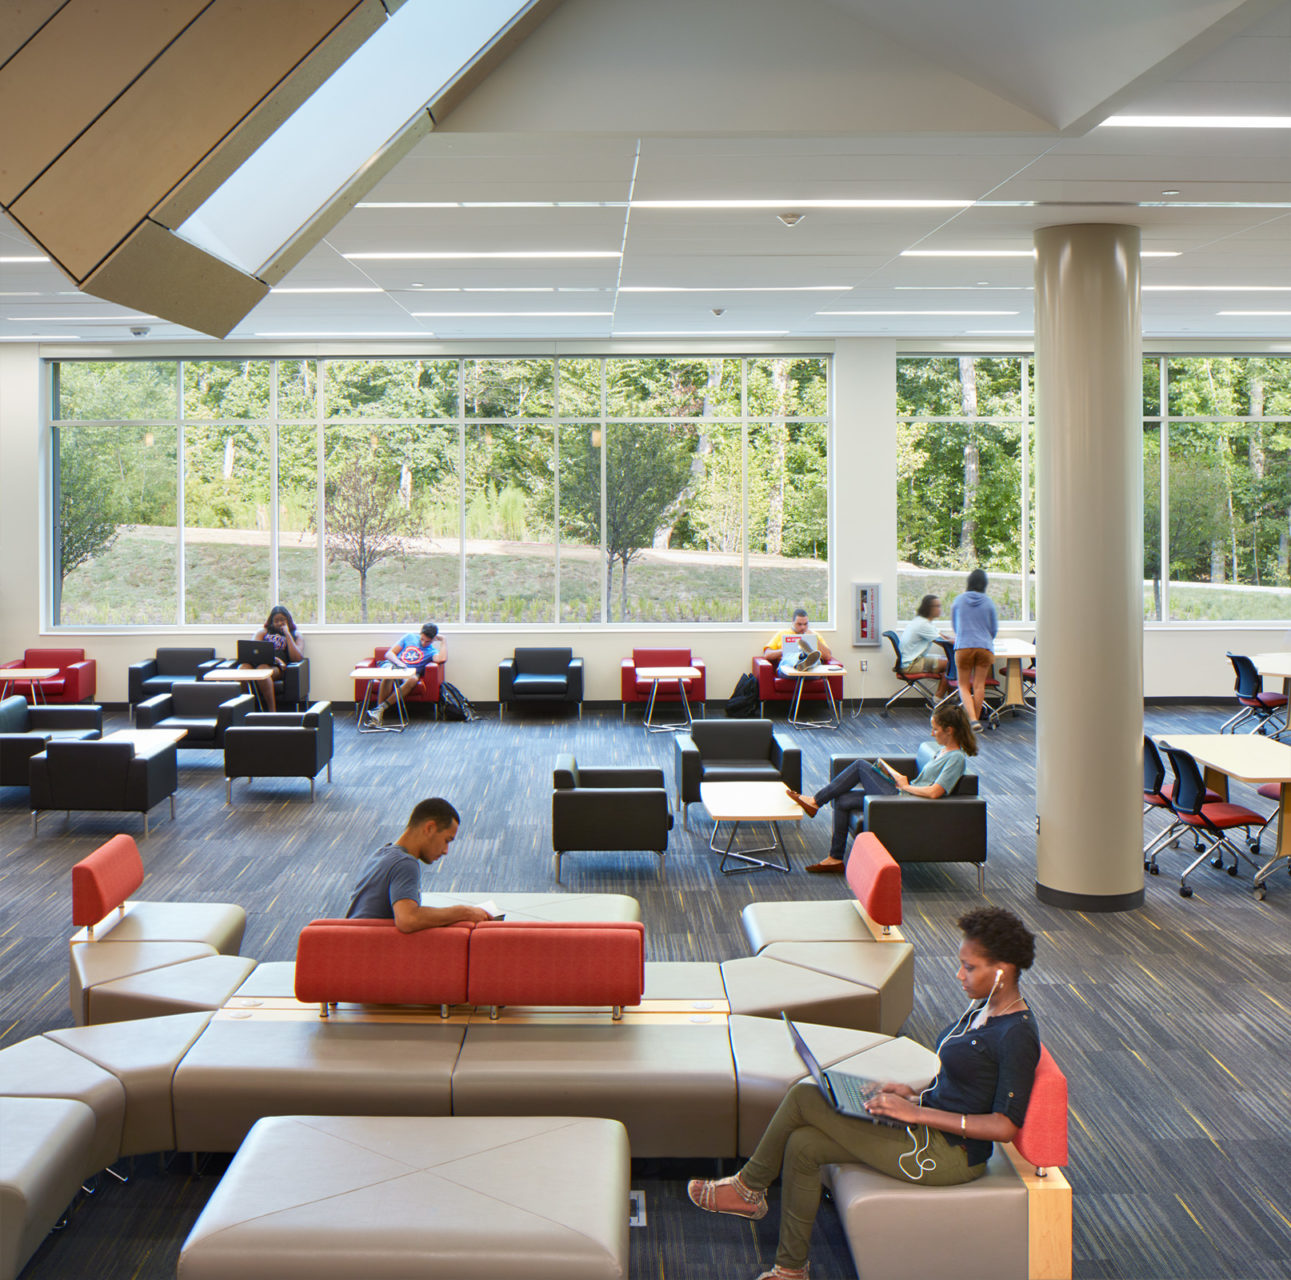 uilding F at Wake Tech Community College in Raleigh, NC; Architect: Clark Nexsen